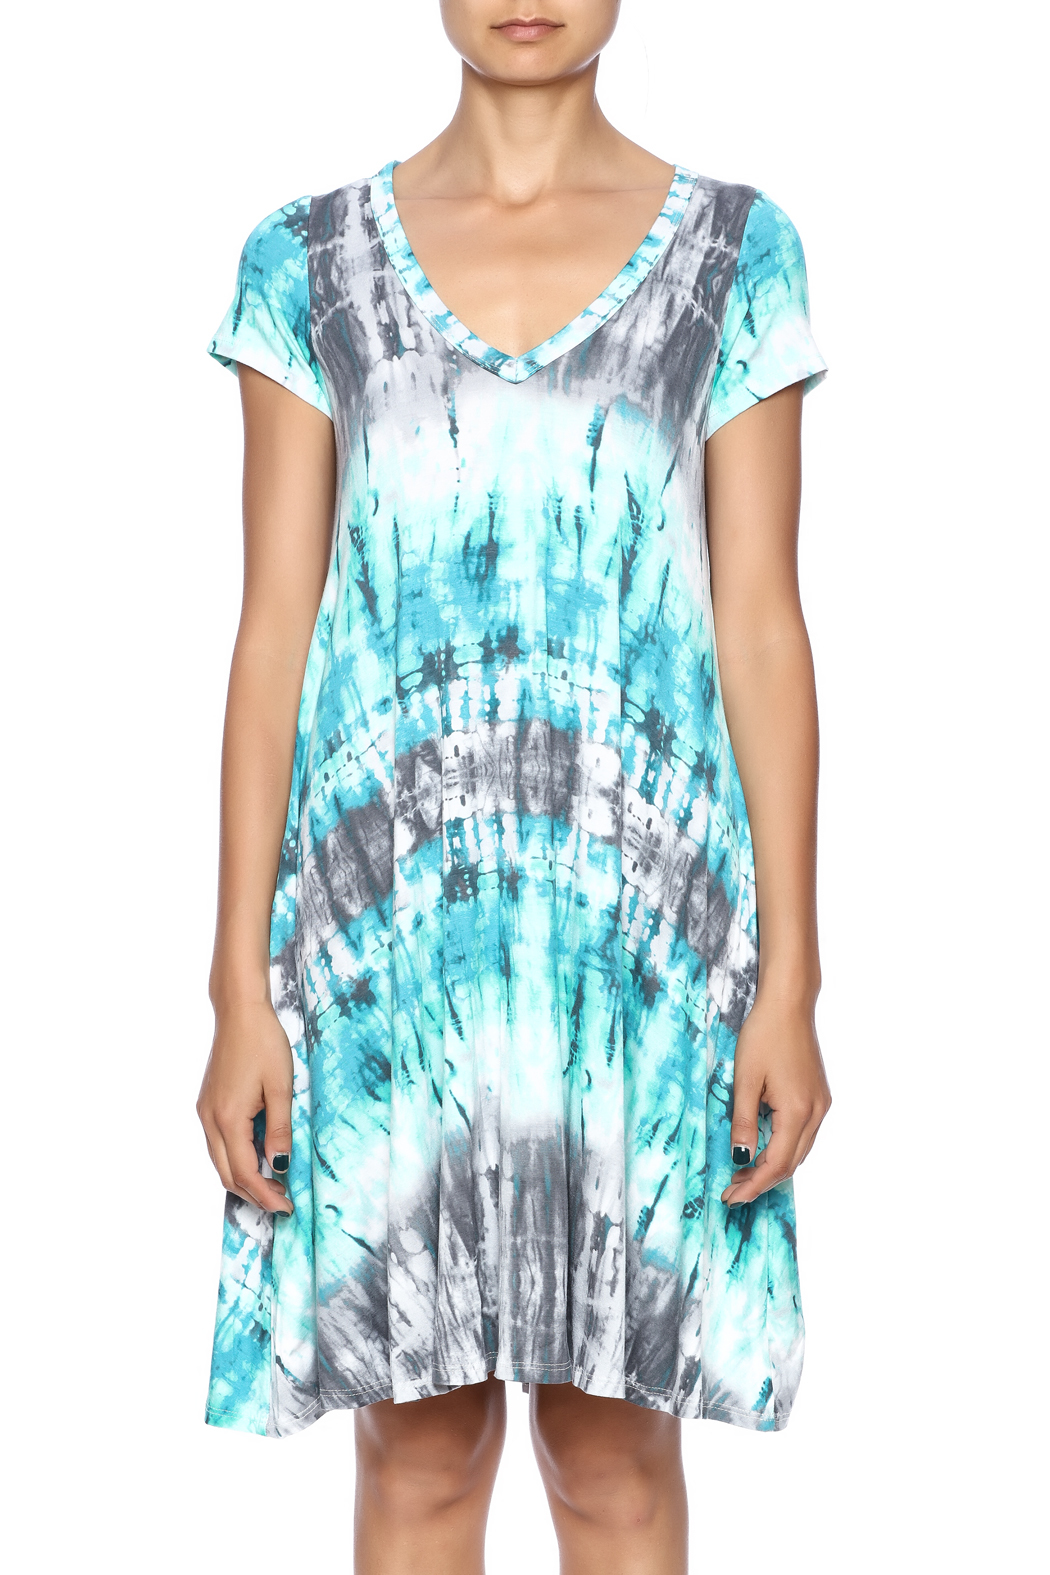 143 story blue tie dye dress from tennessee by southern